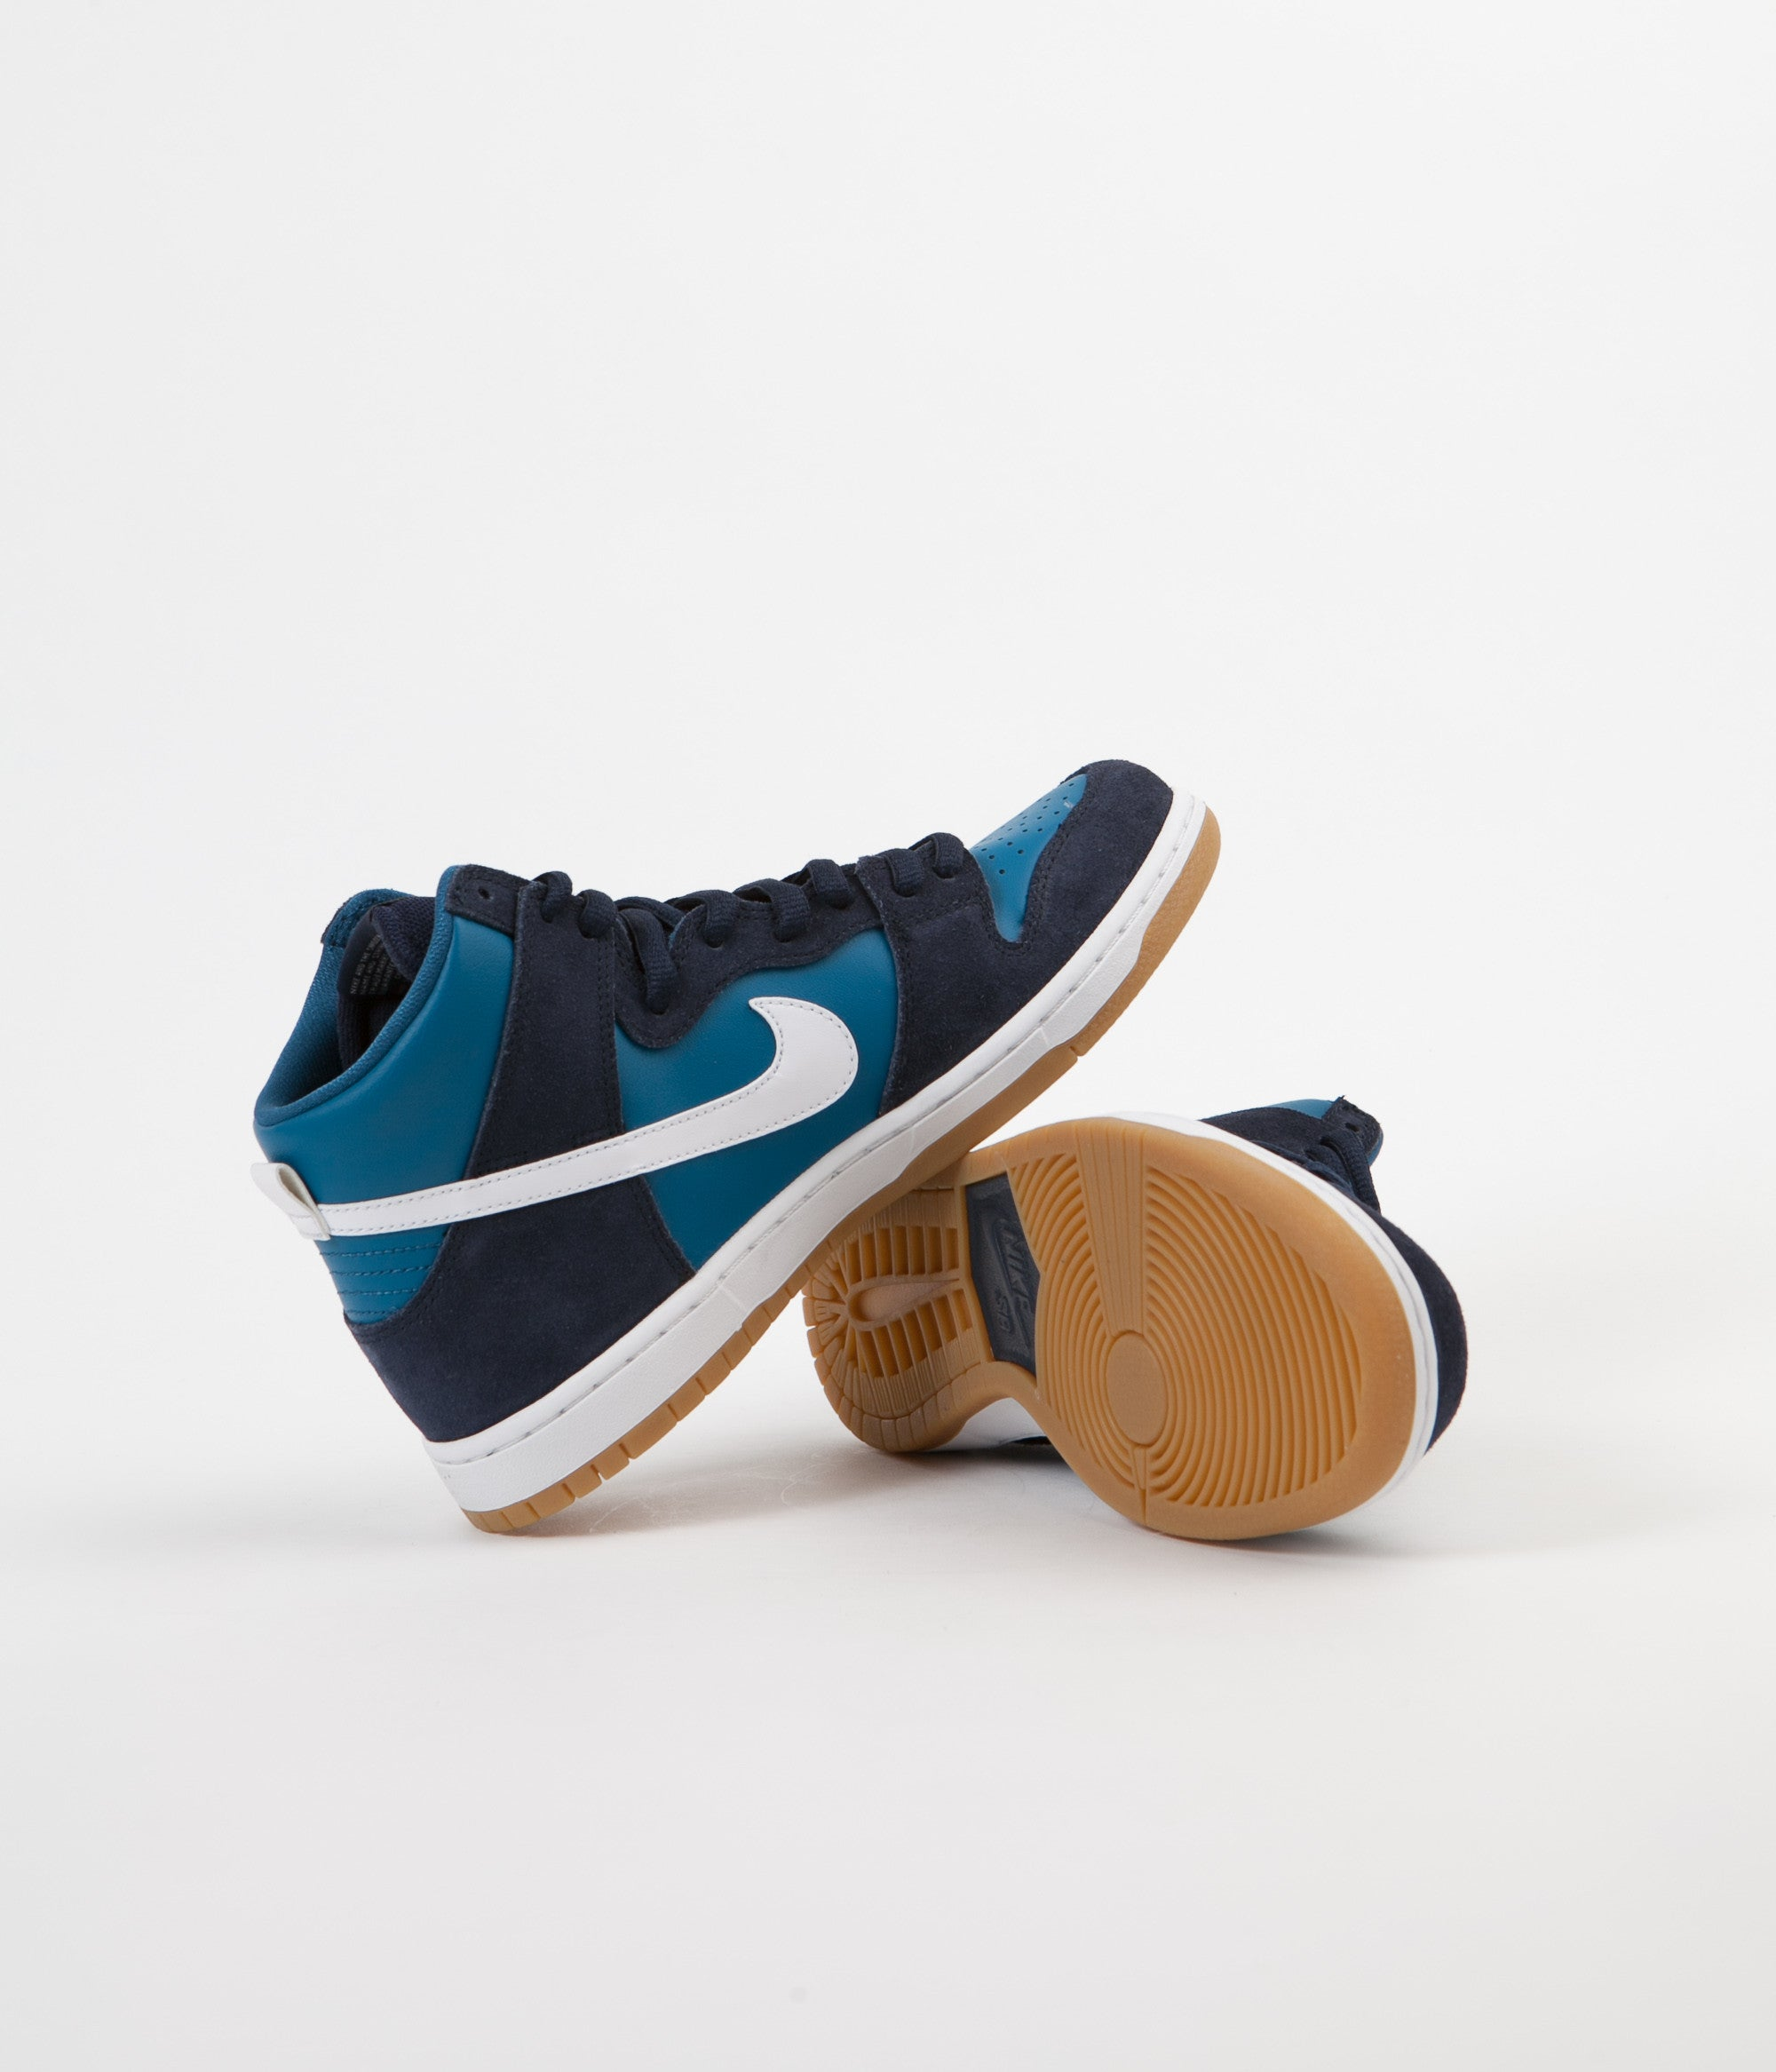 Nike SB Dunk High Pro Shoes - Obsidian / White - Industrial Blue